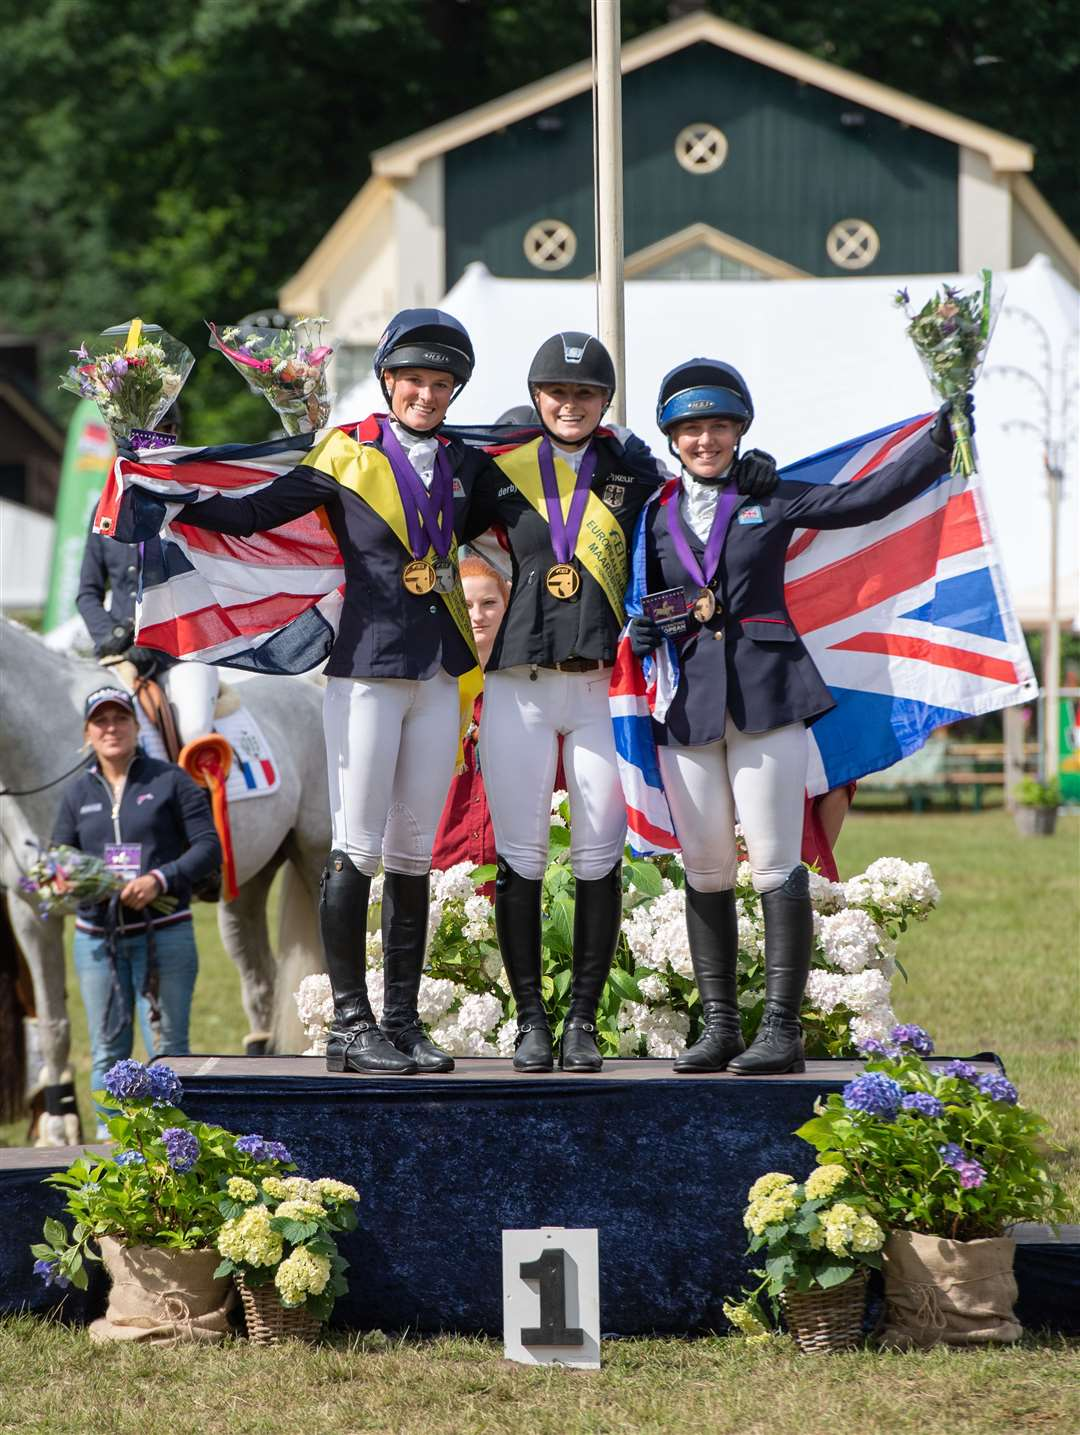 Young Rider Individual Championship Presentations - Bubby Upton (GBR) - Emma Brussau (GER) - Heidi Coy (GBR) - FEI European Eventing Championships J/YR - Maarsbergen 2019. Picture Adam Fanthorpe